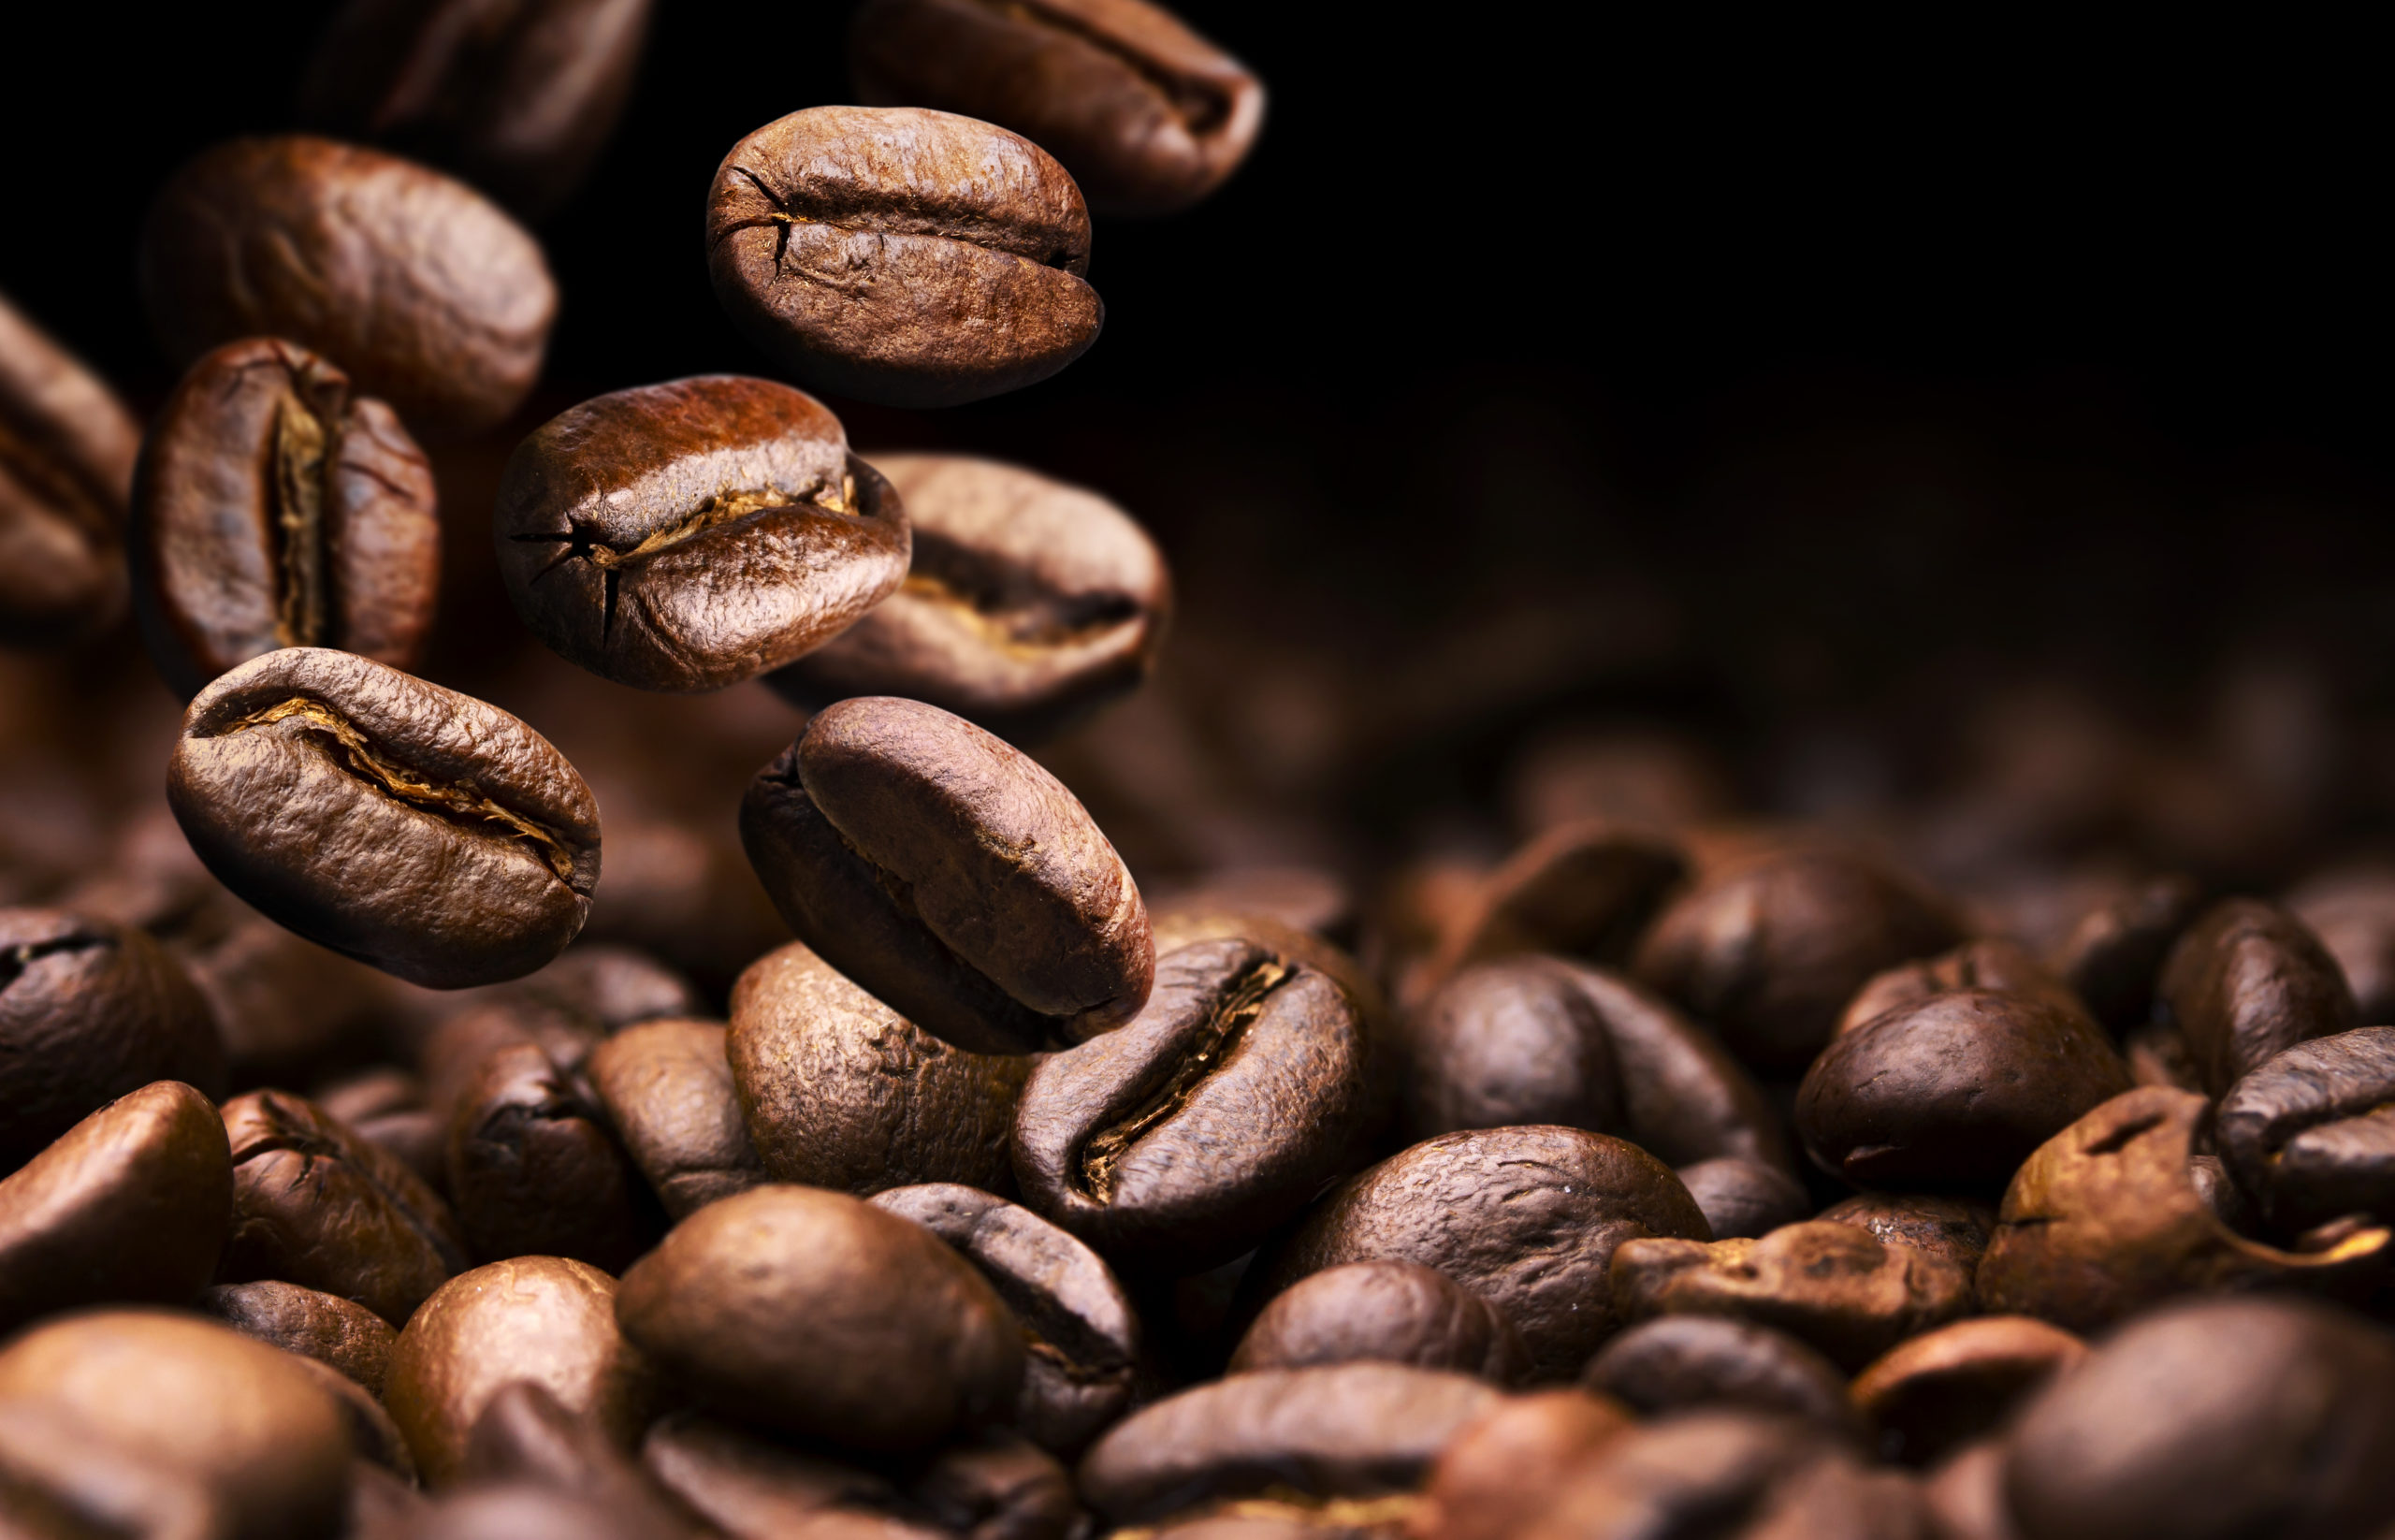 Roasted coffee beans falling on pile, black background with copy space, close up